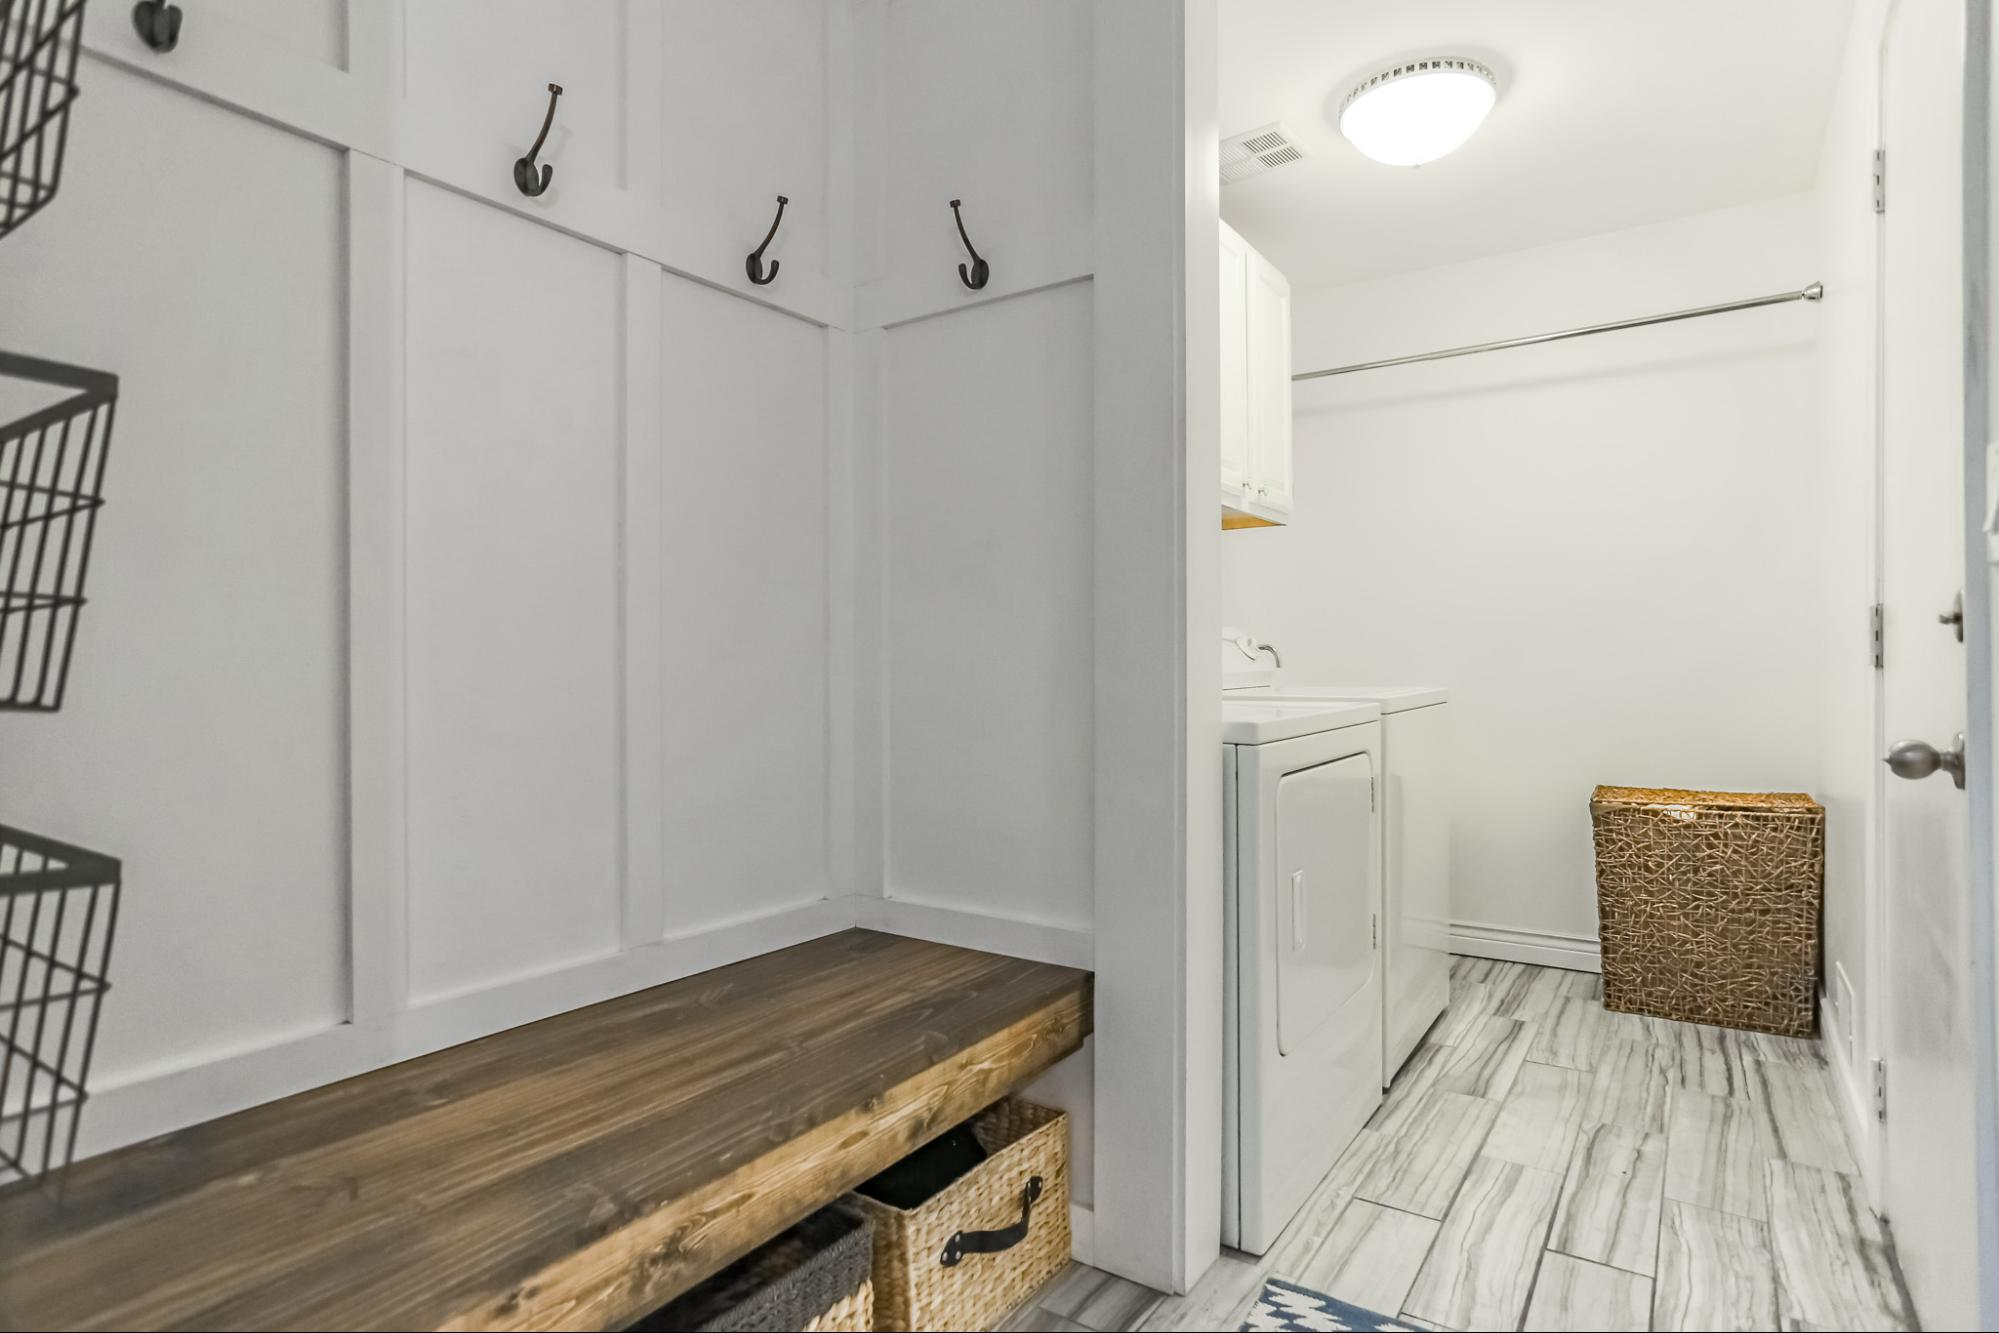 Our gorgeous mudroom. I'm so happy with how this project turned out!